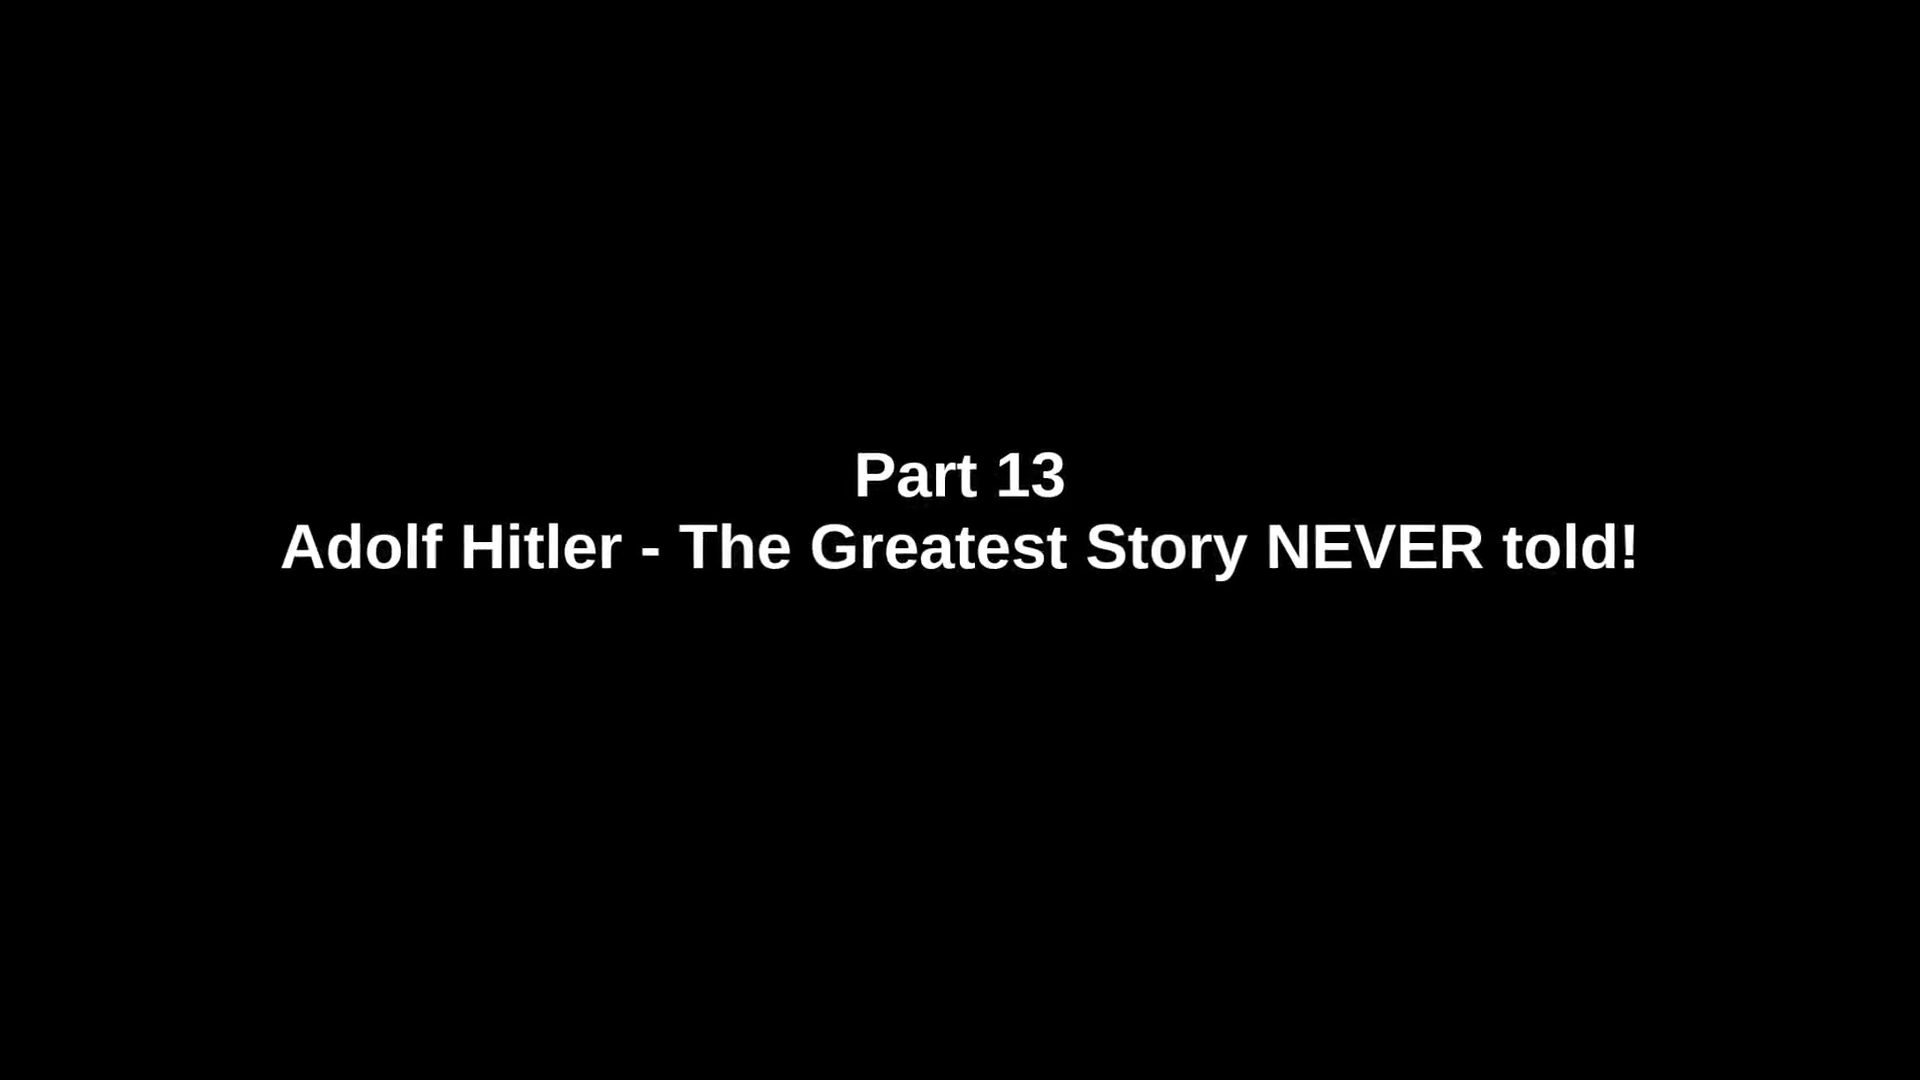 Adolf Hitler: The Greatest Story Never Told (2013) - ΜΕΡΟΣ Γ' (Greek subtitles)